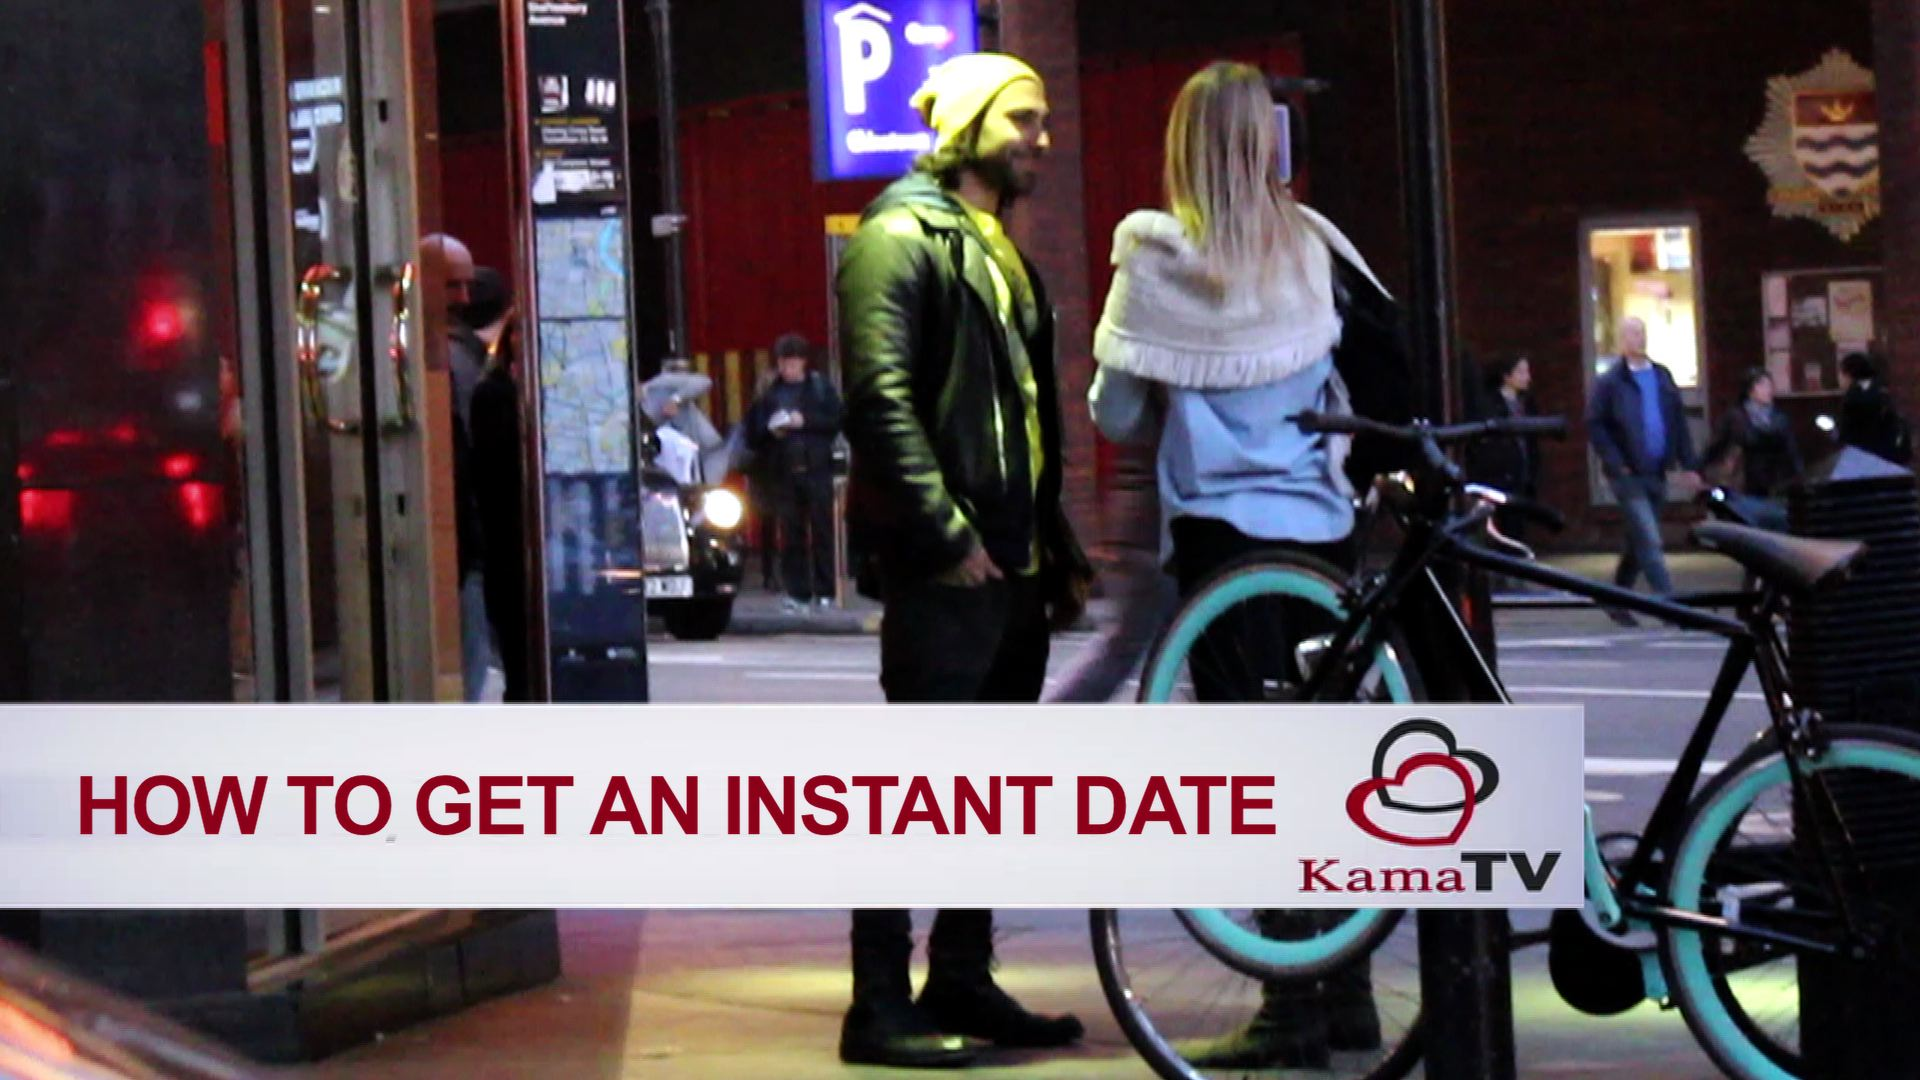 Instant date pickup